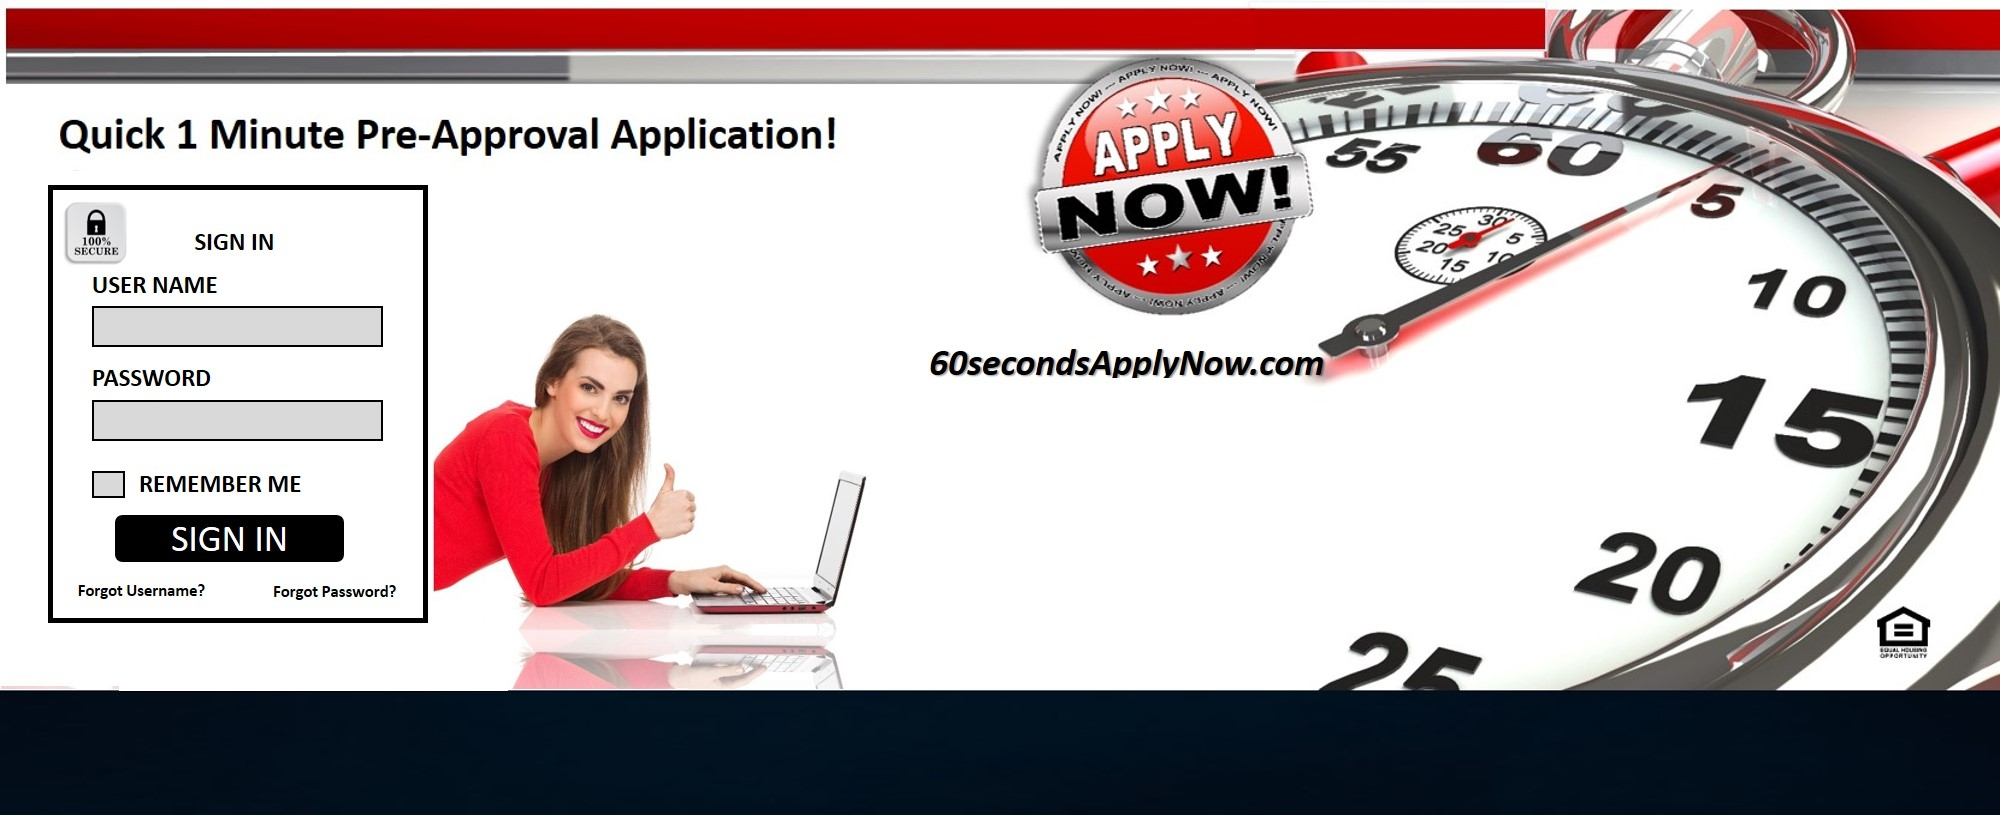 Go to our 1 minute Application for a FREE detailed Rate Quote and Terms ... 60SecondsApplyNow.com